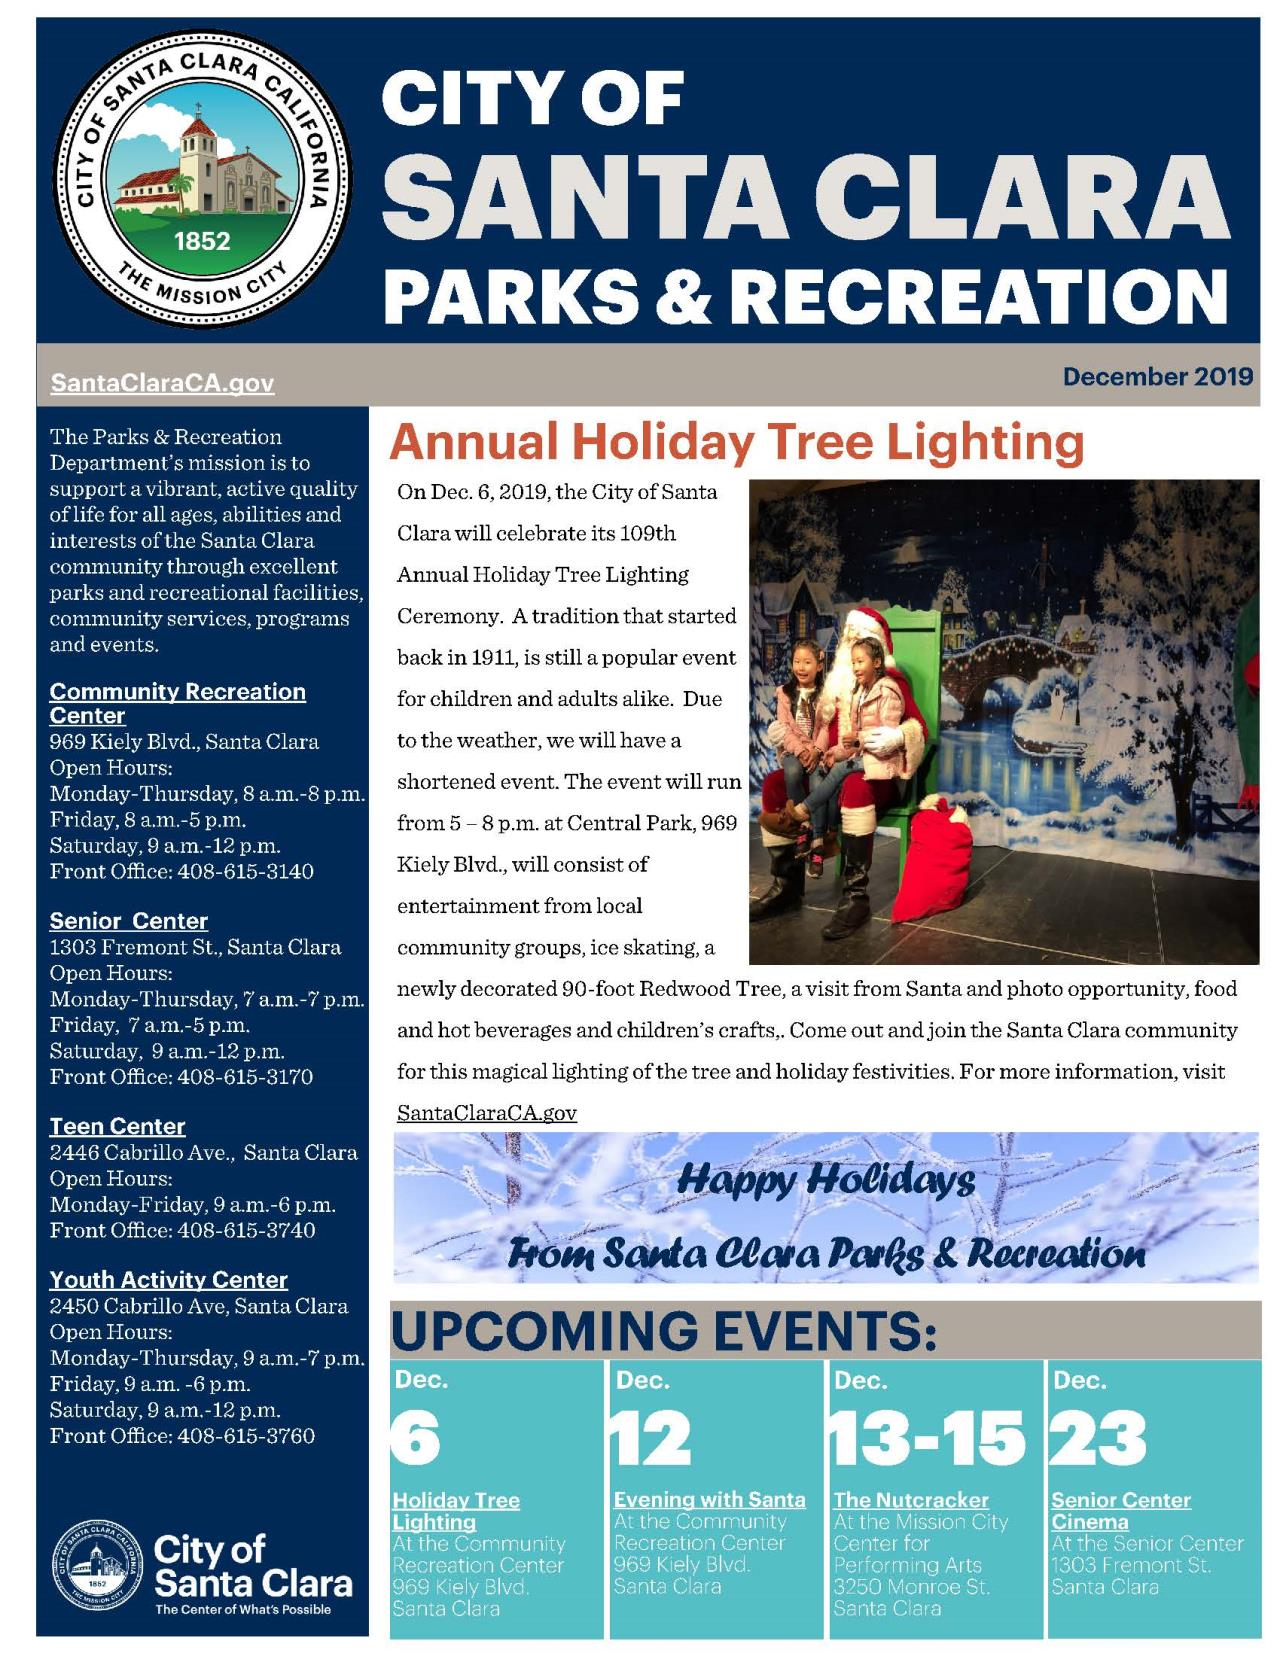 Parks and Recreation eNewsletter for December. Featuring Holiday Tree Lighting article, upcoming events and facility info